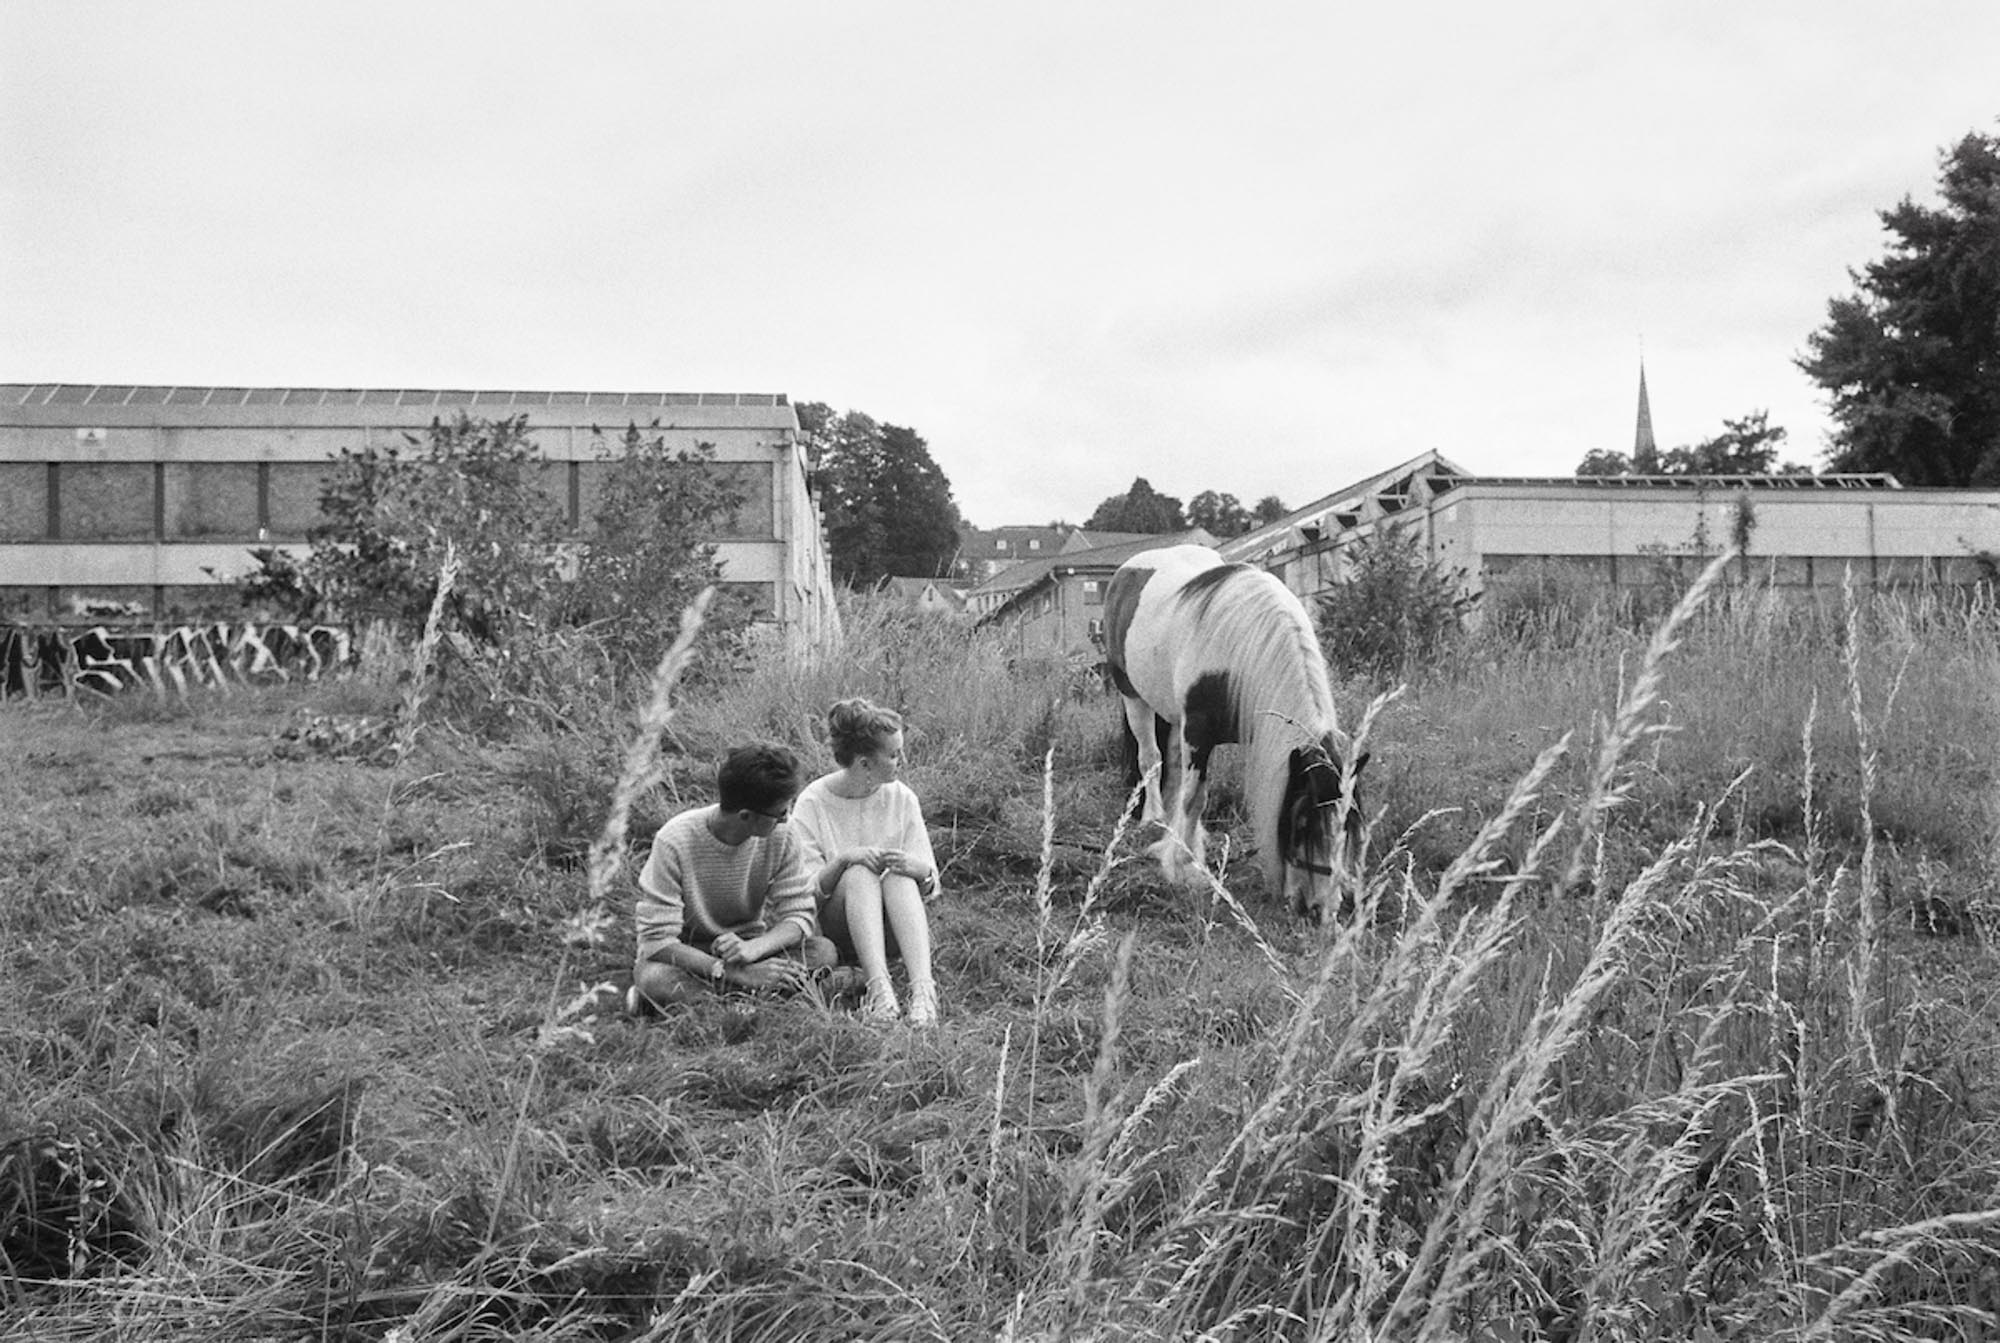 This couple visits a horse being illegally grazed on the site. July 2017, ILFORD FP4 PLUS